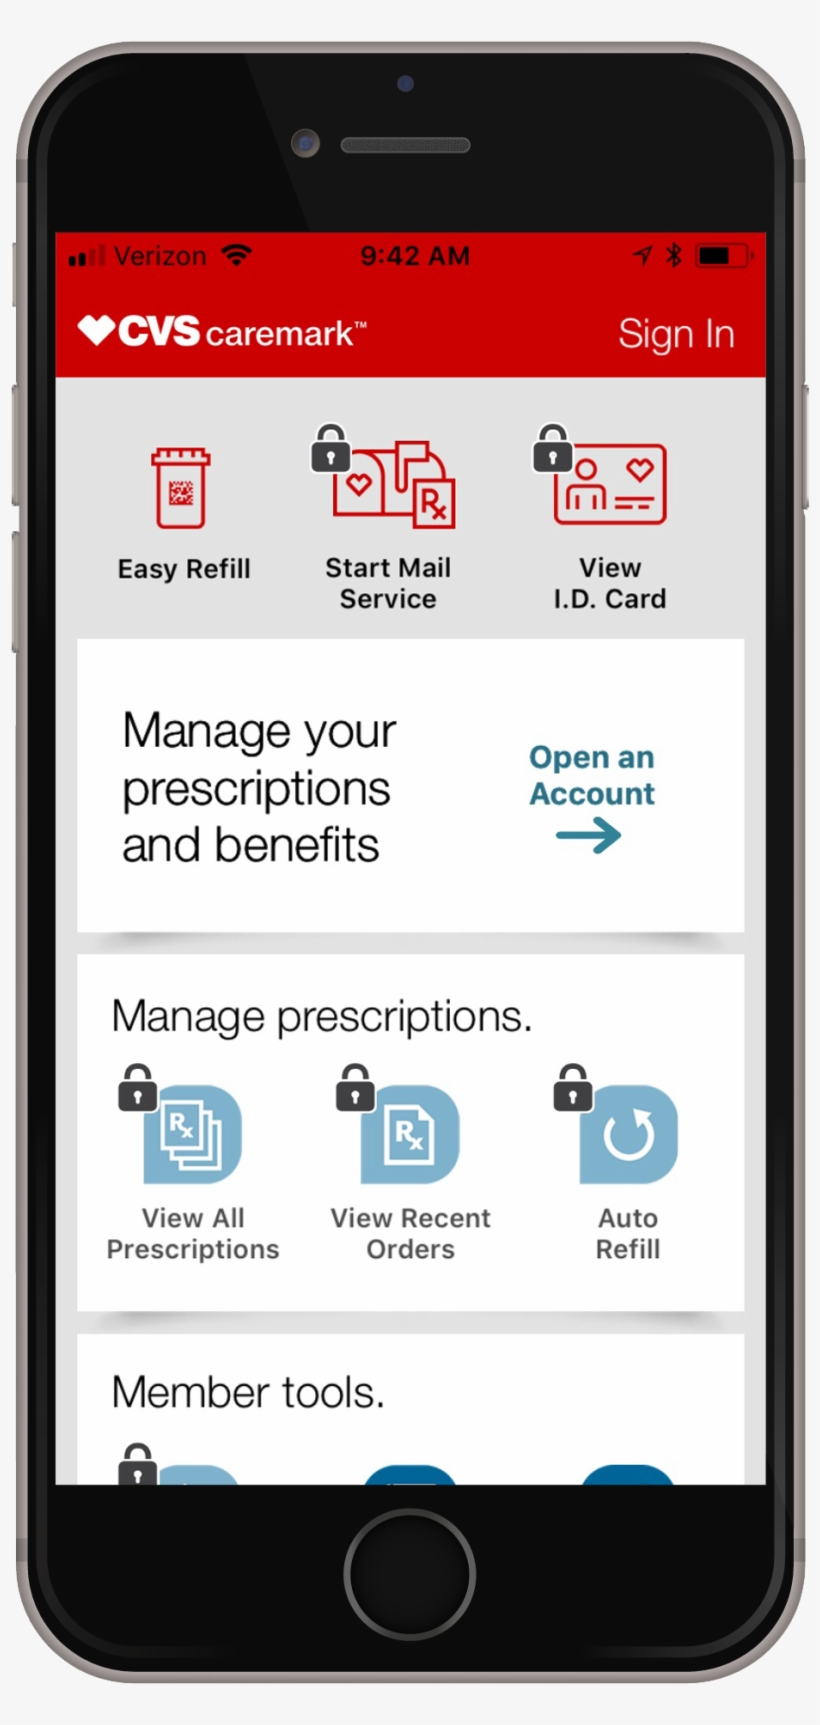 8468688d Cvs/caremark Mobile App - Airtel Mobile App - Free Transparent PNG ...